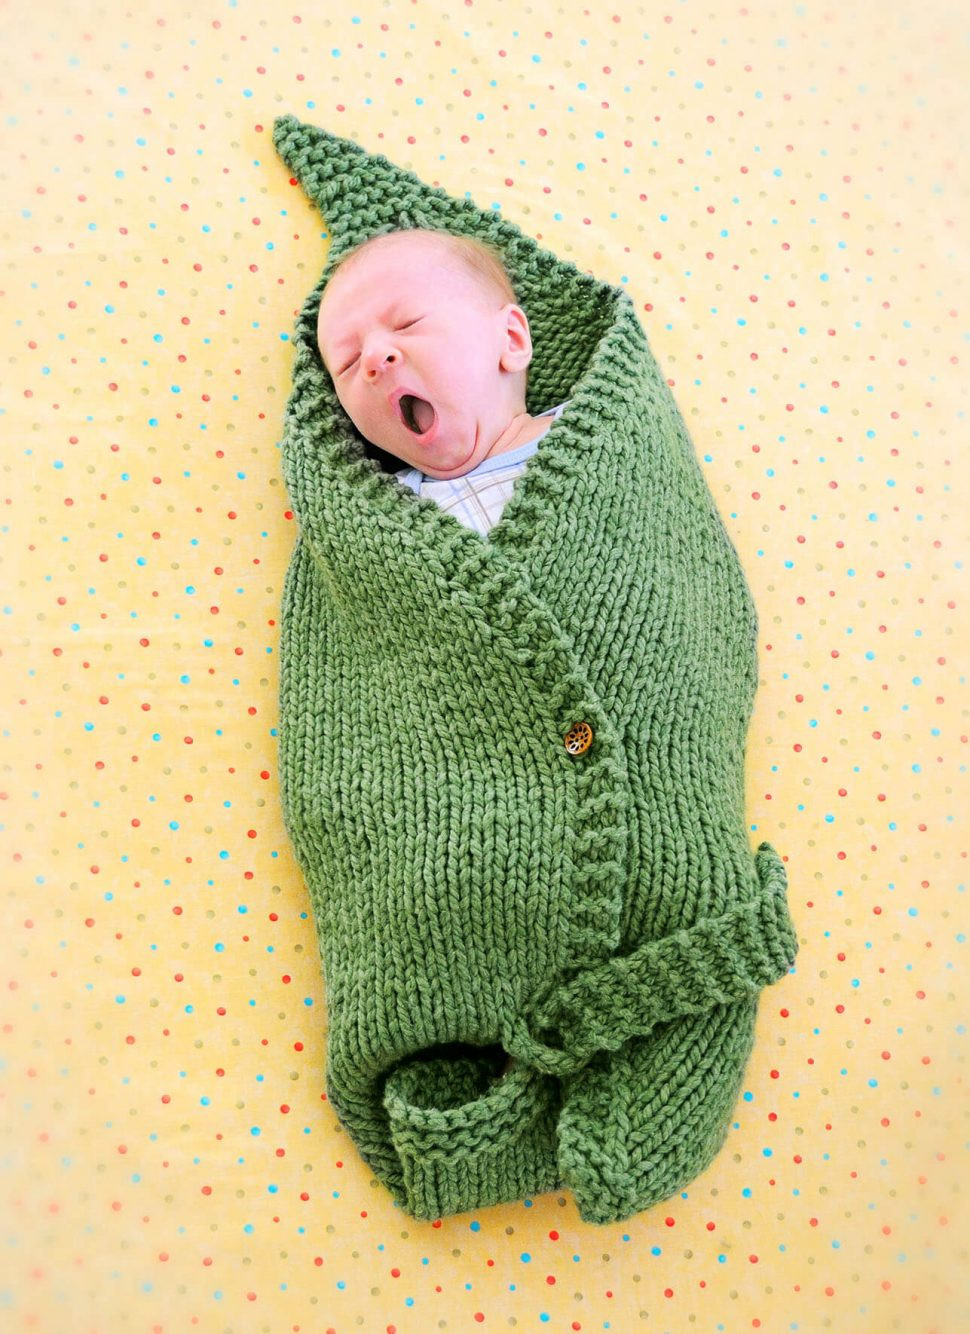 Lovely Homemade Knitted Baby Blankets Chunky Wool Knitting Cotton Knit Baby Blanket Of Awesome 41 Models Cotton Knit Baby Blanket